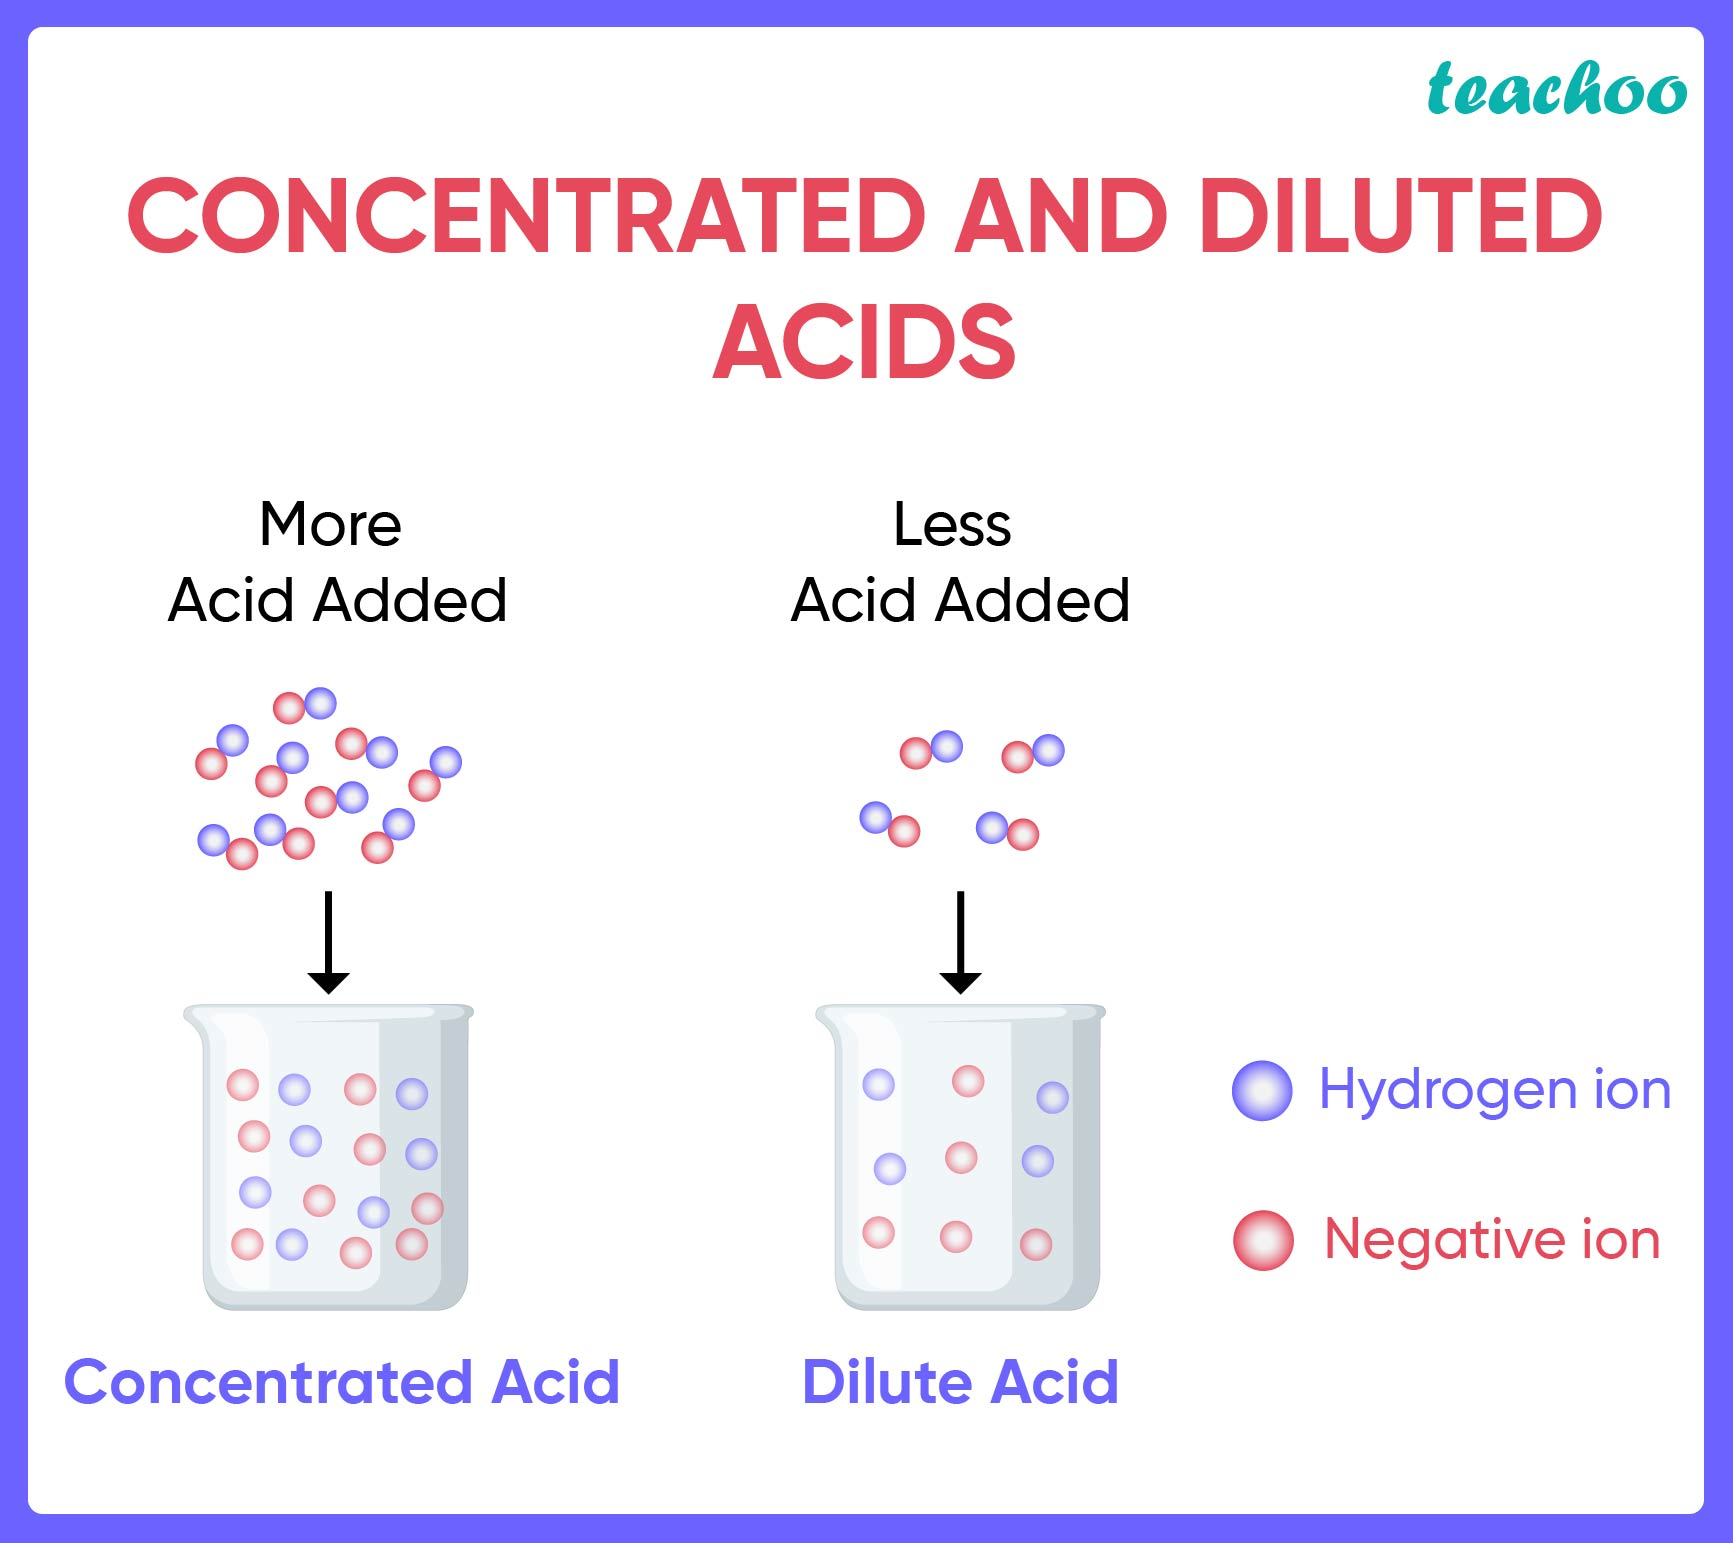 Concentrated and Diluted Acids-Teachoo.jpg